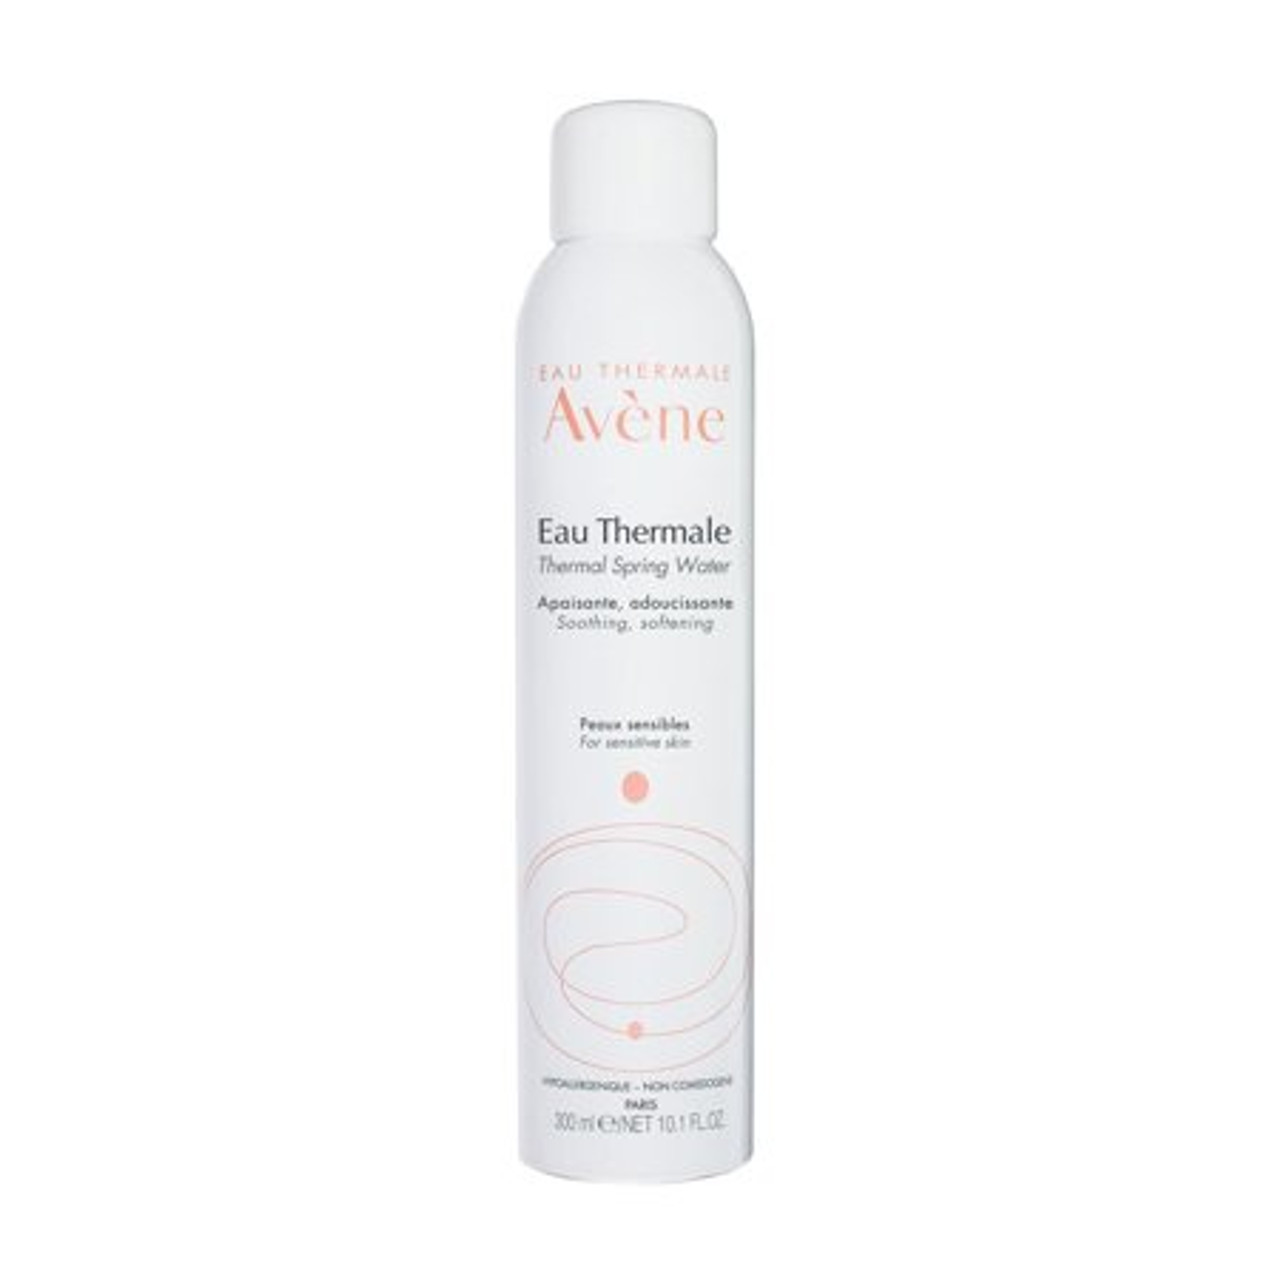 Avene Thermal Spring Water 300 mL  Known for its history in treating atopic dermatitis, Avene Thermal Spring Water is the only thermal spring water bottled directly from the source and packaged in a sterile environment to guarantee purity and maximum skin benefits.